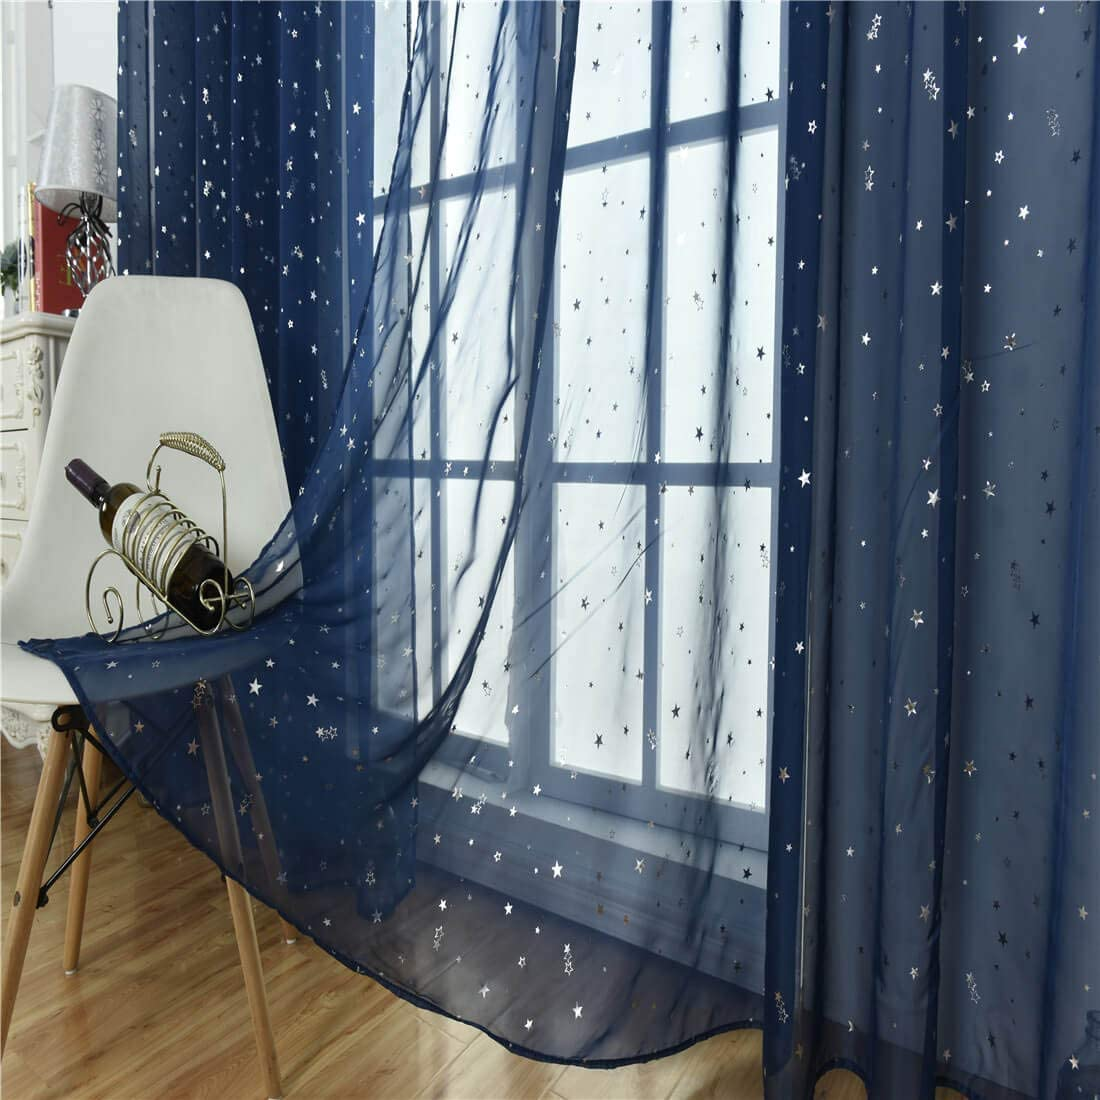 Amazon Com Wubodti Kids Room Window Sheer Navy Blue Curtain 1 Panel Rod Pocket Beautiful Star Voile Sheer Rod Pocket Drapes Curtains For Boys Bedroom Living Room Window Treatments Curtains 39 X 106 Inch,Single Bedroom Small 1 Bedroom Apartment Design Plans